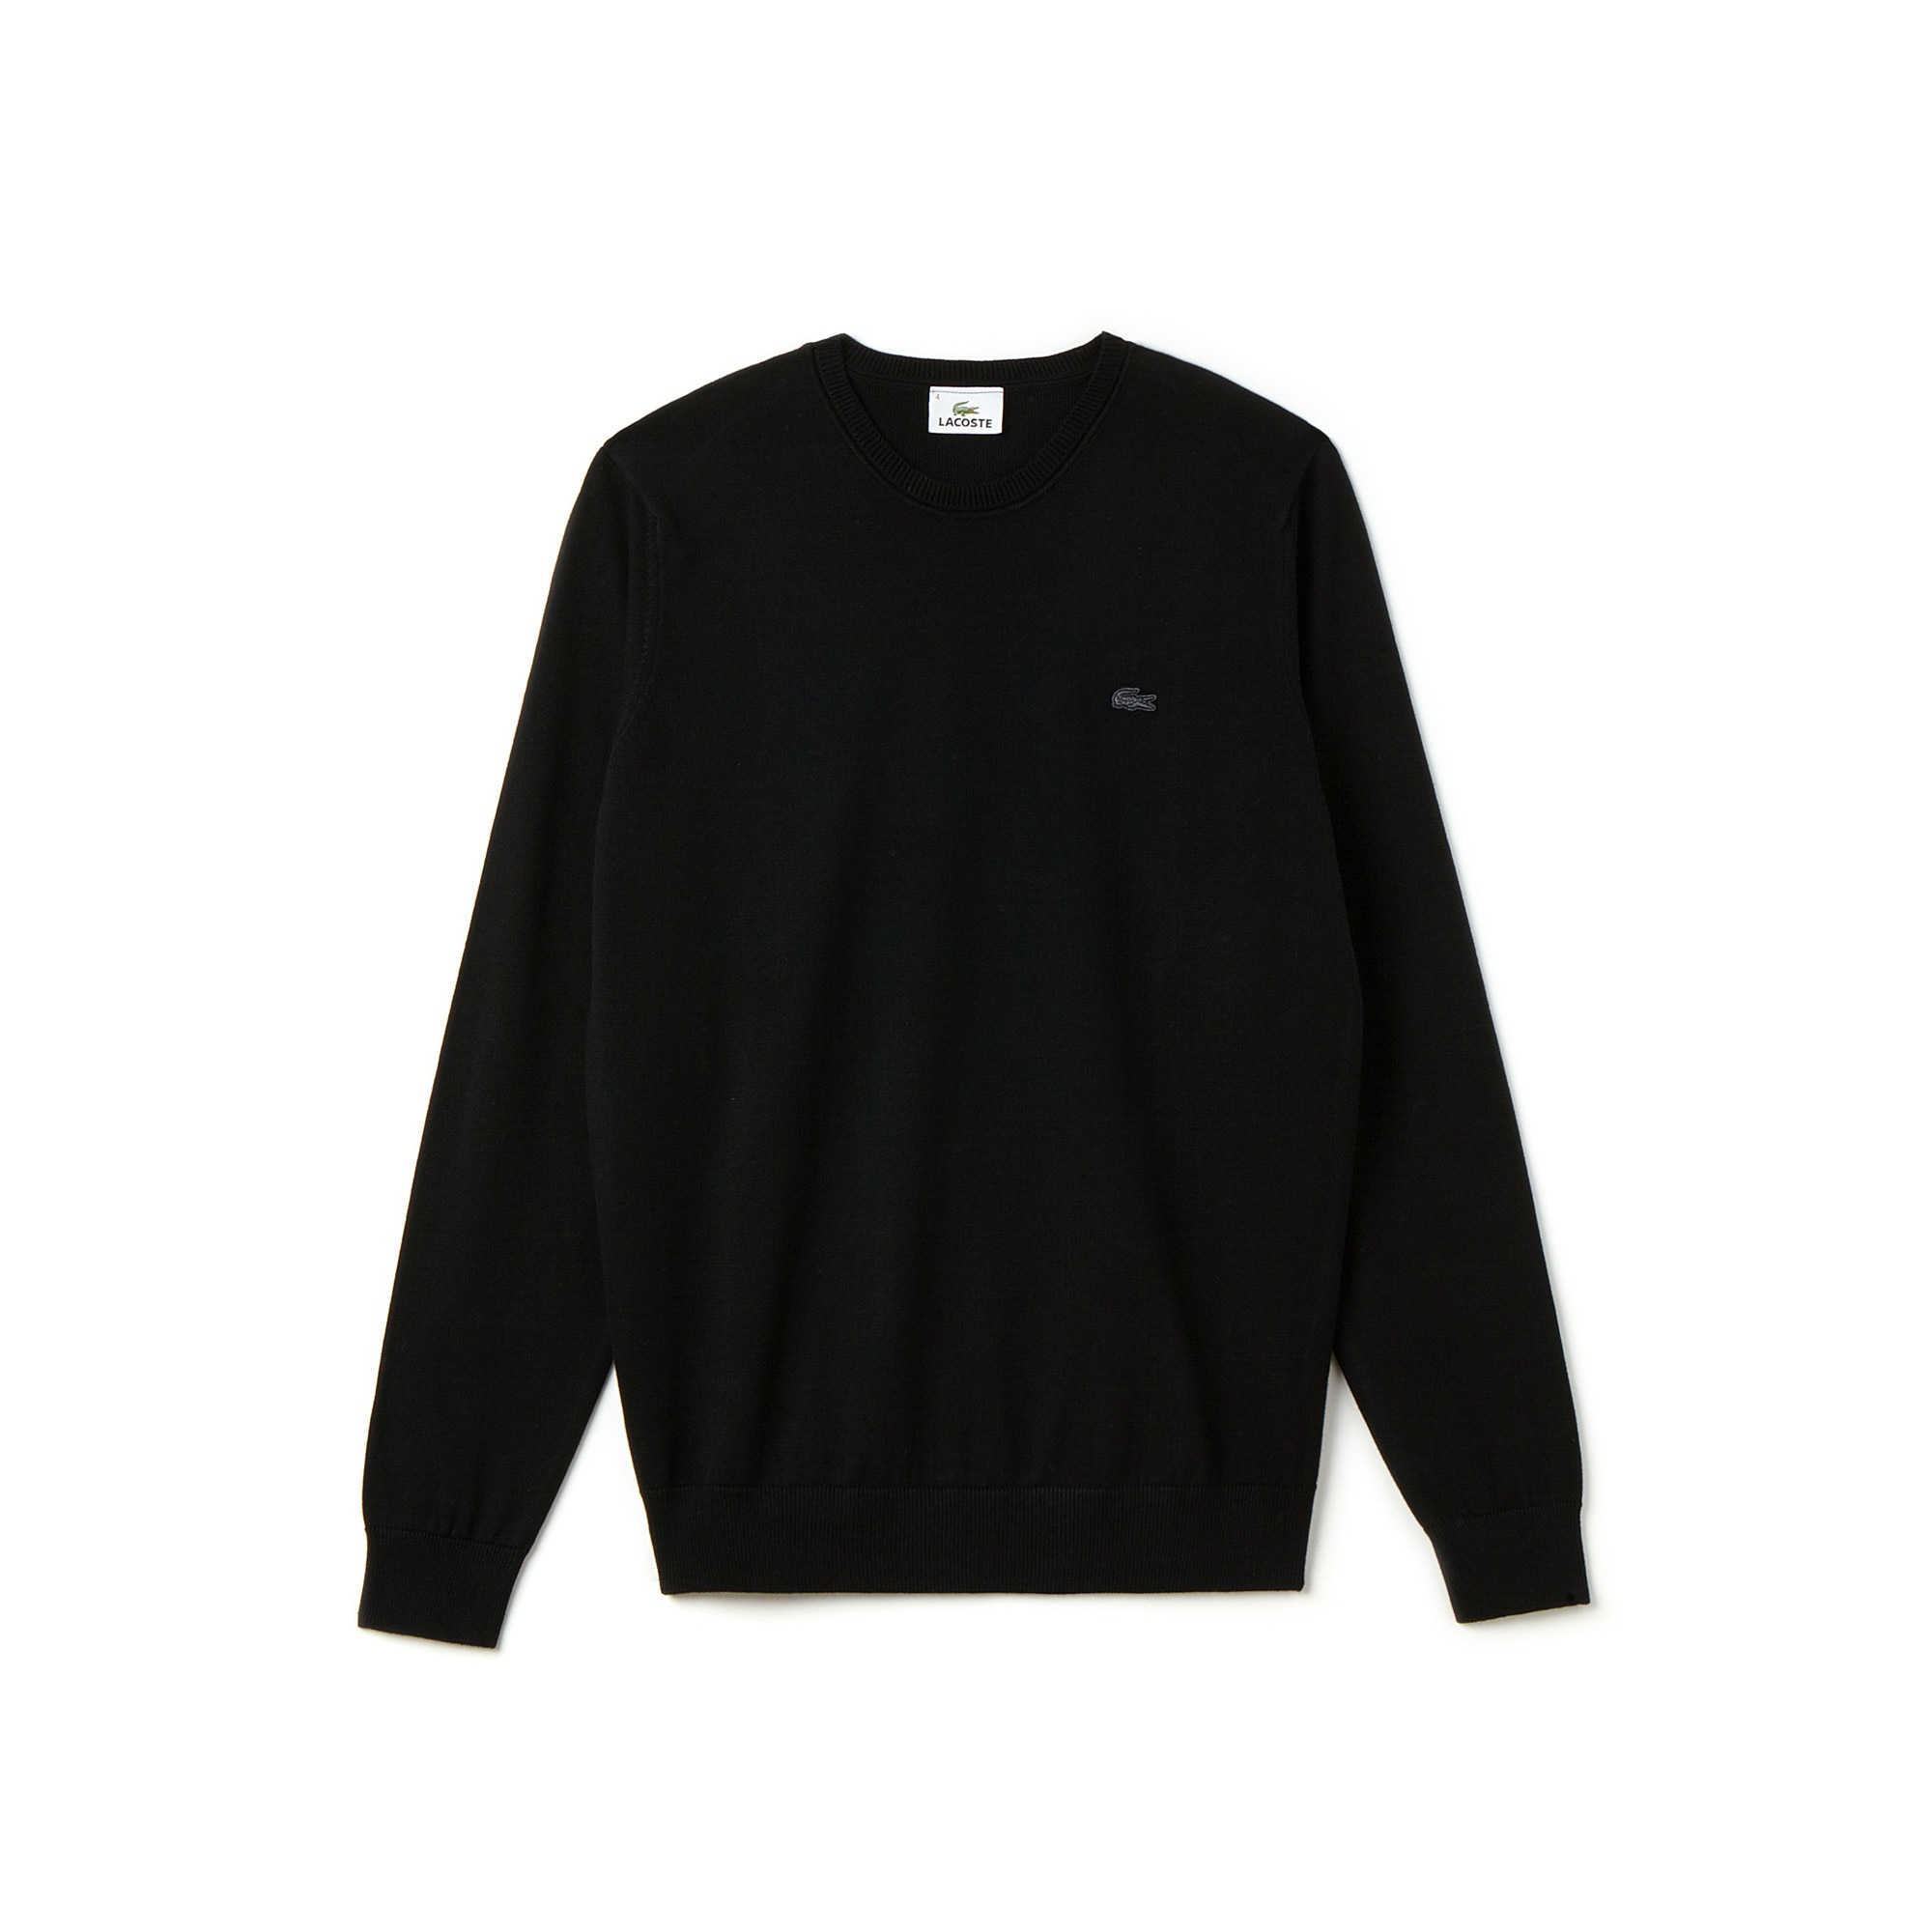 Men's Sweaters, Sweatshirts on Sale | LACOSTE